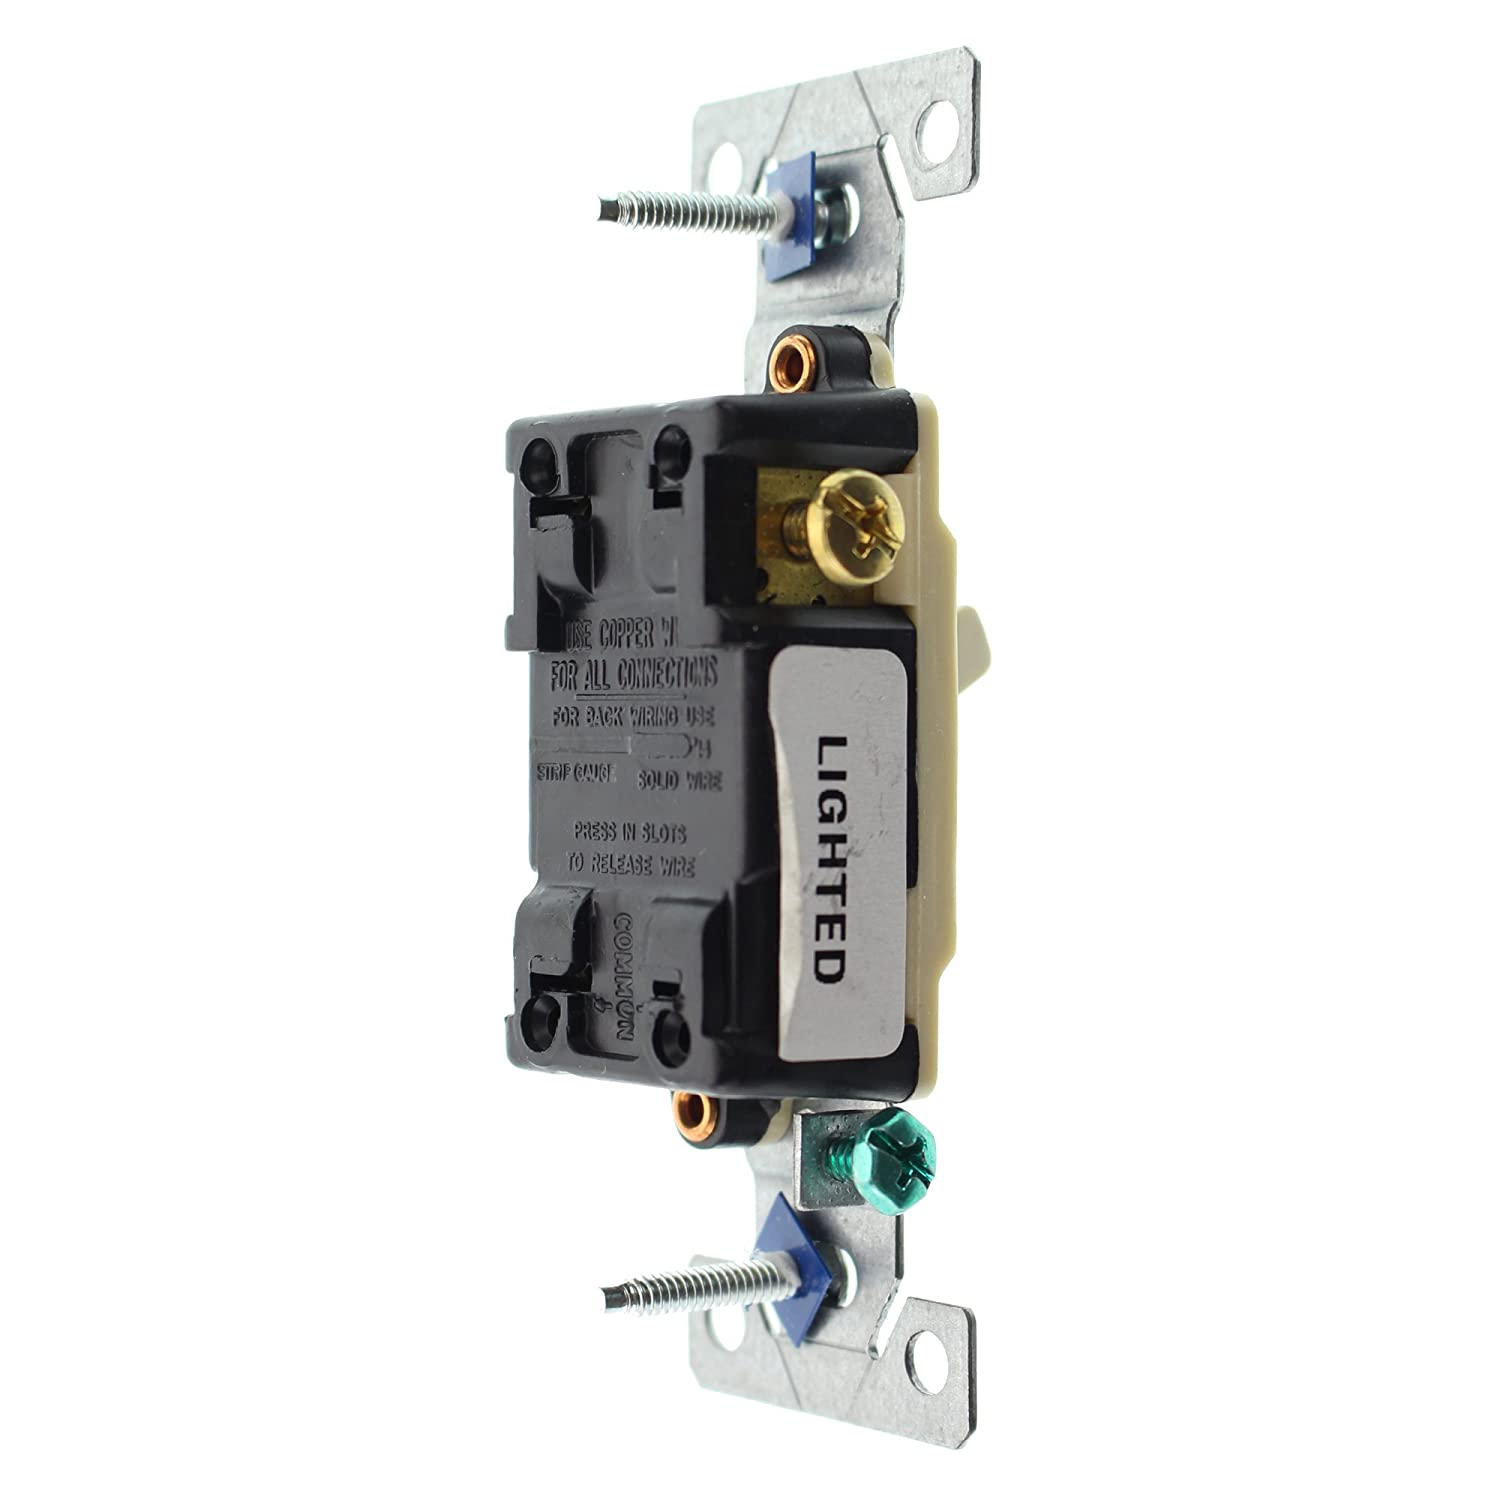 Hubbell Rs315ilcz Lighted Toggle Switch 3 Way Grounding 15 Amp Key 120 Volt Ivory 96 Pack